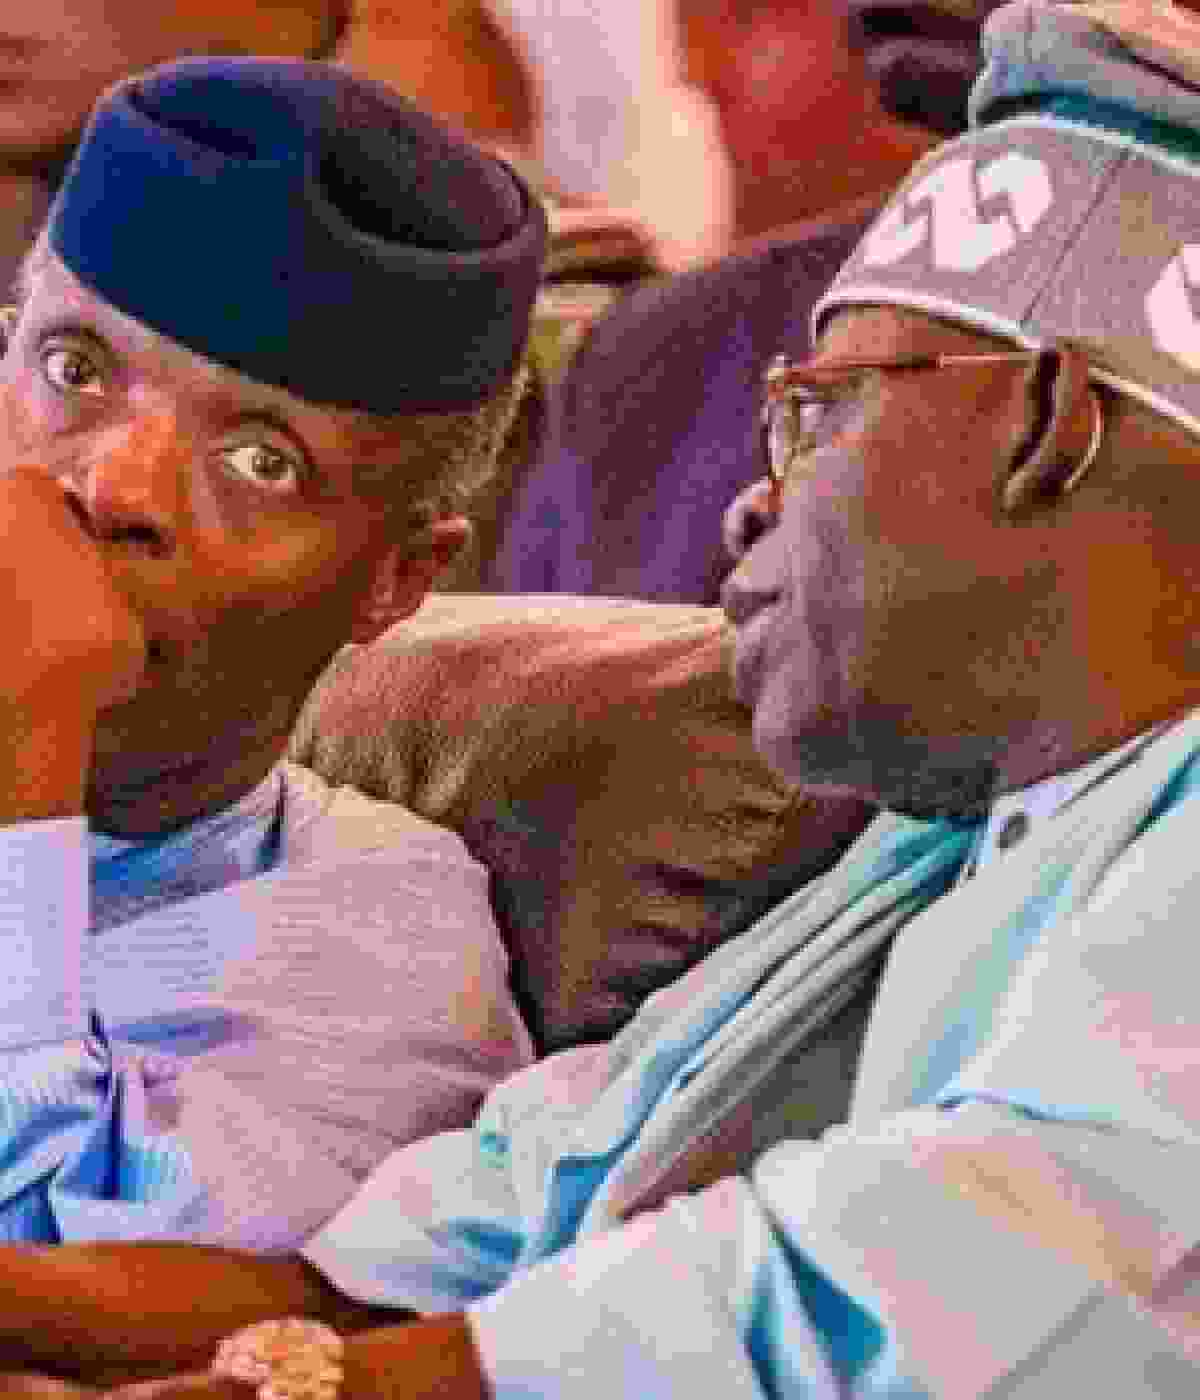 Osinbajo has committed many sins, Tinubu will lose control of Lagos - Apostle Okikijesu